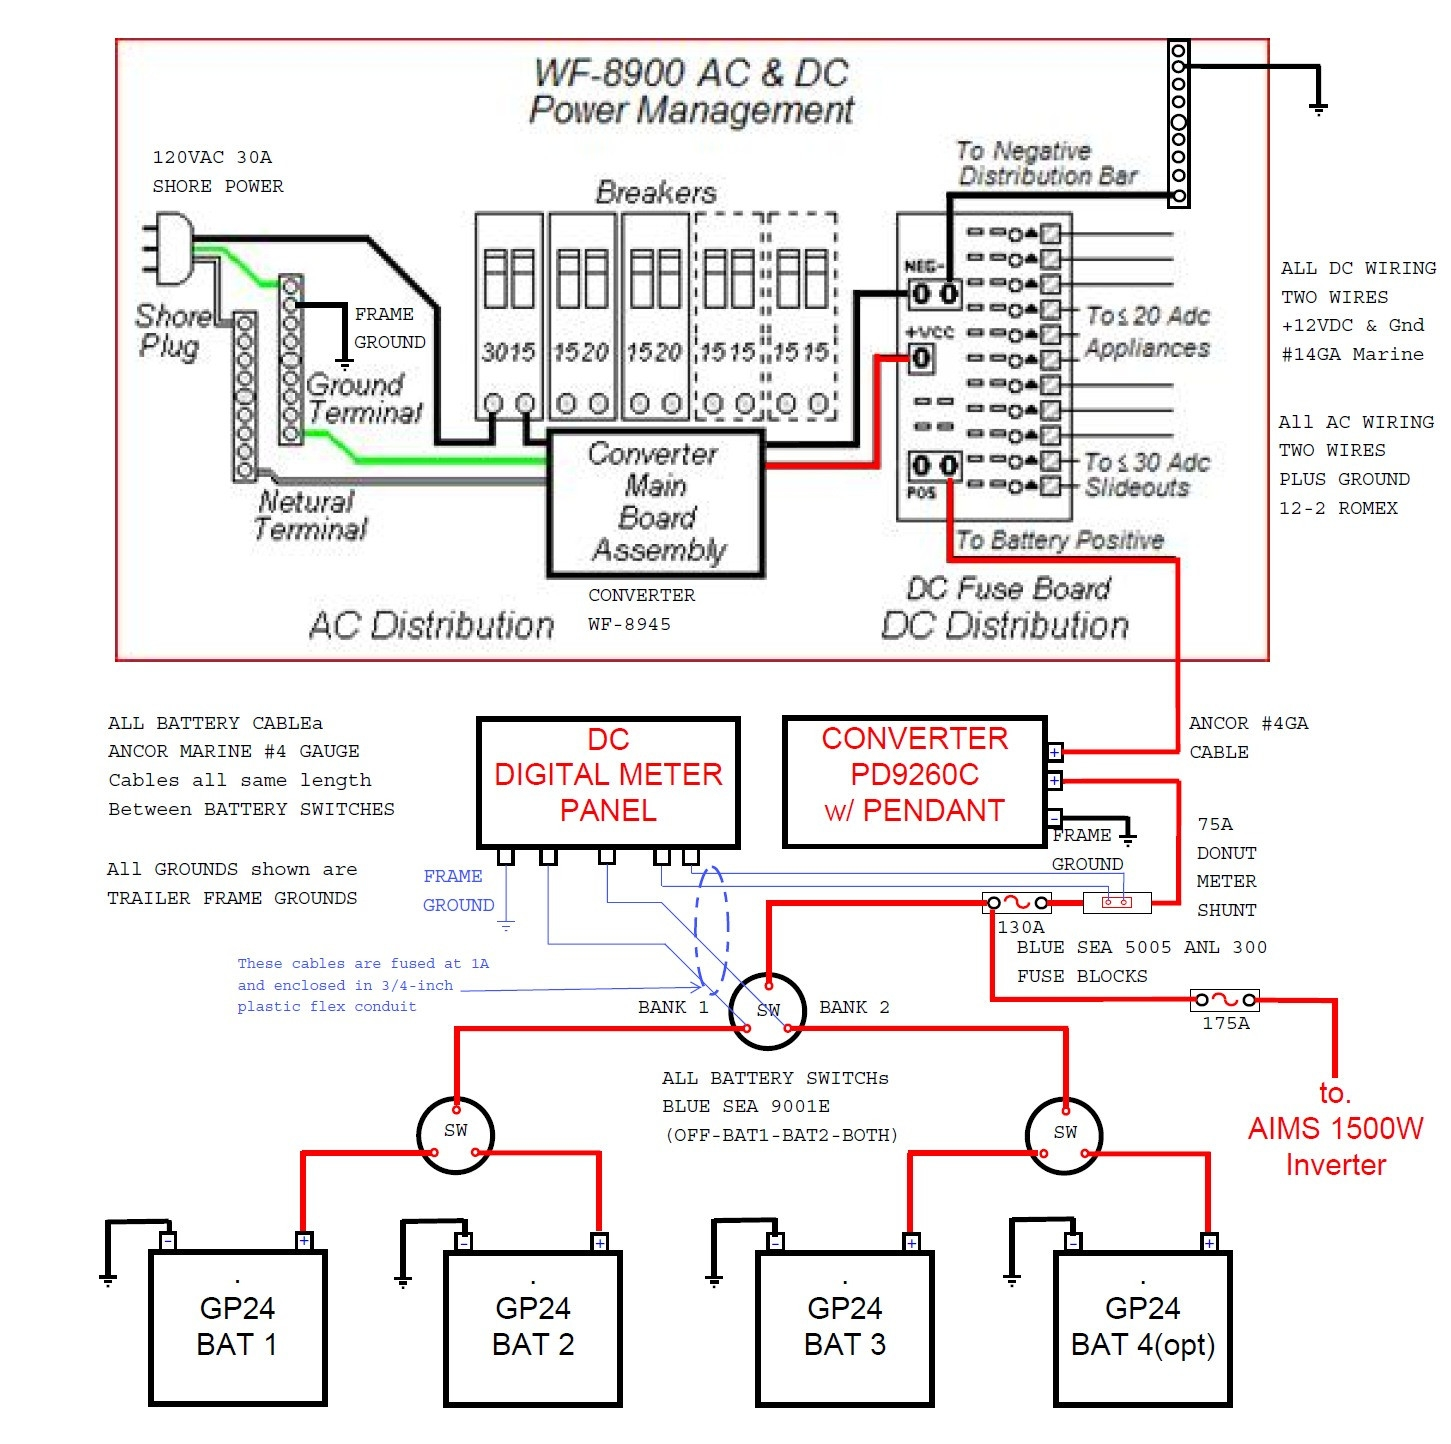 30 amp shore power wiring diagram 30 amp shore power wiring diagram